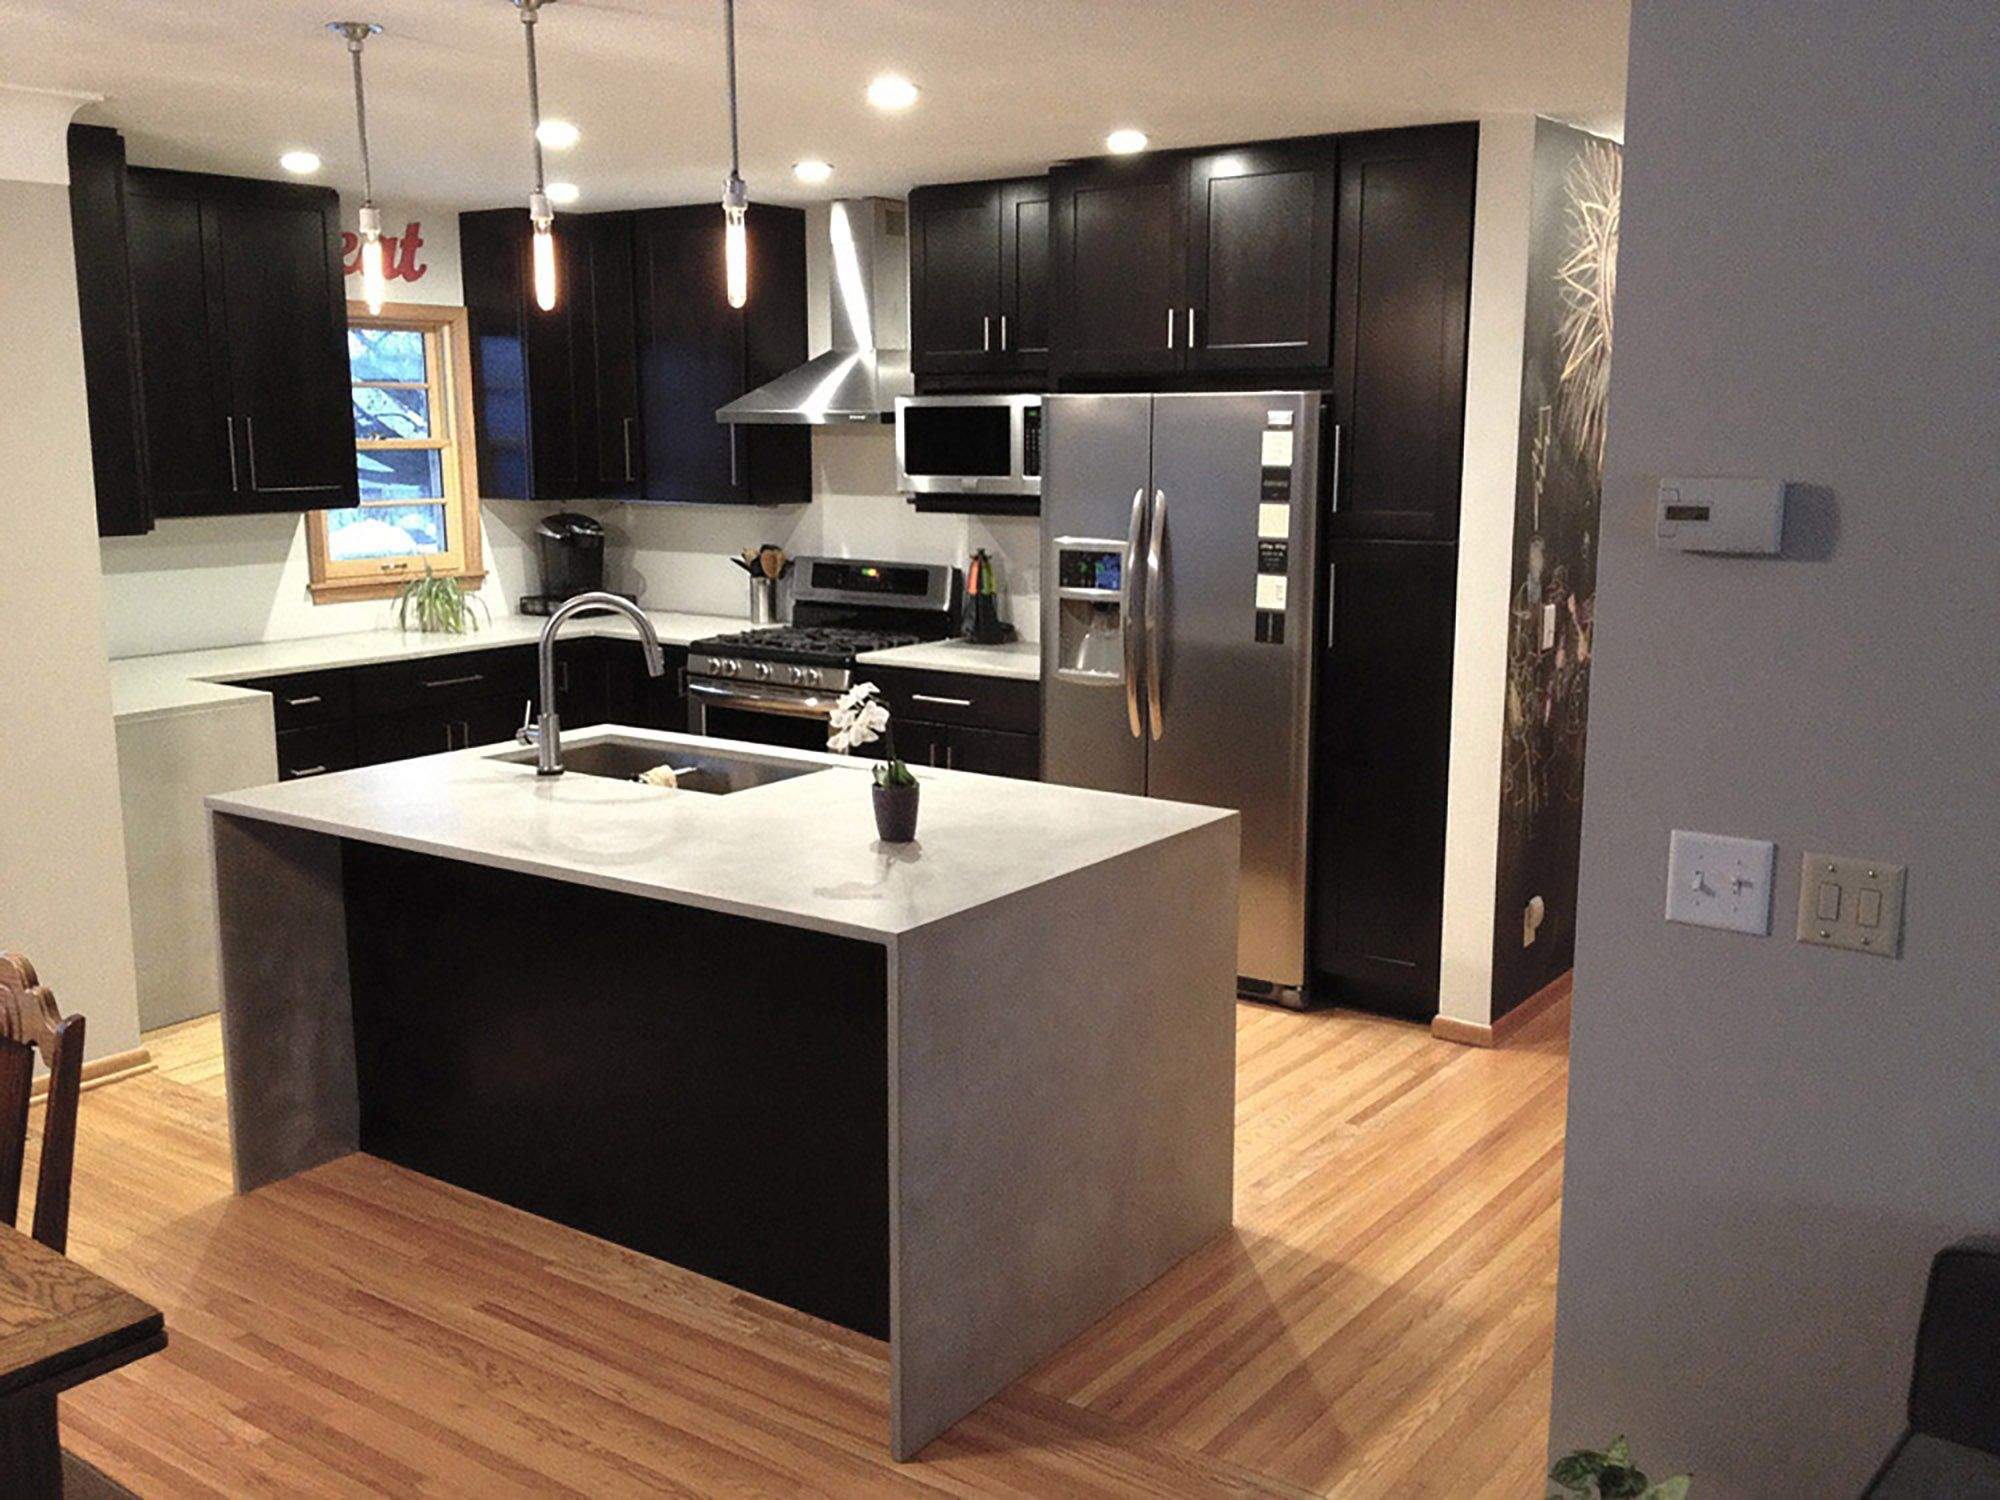 Modern Kitchen Designs Buy Online Photo Gallery Of Remodeled Kitchen Features Cliqstudios